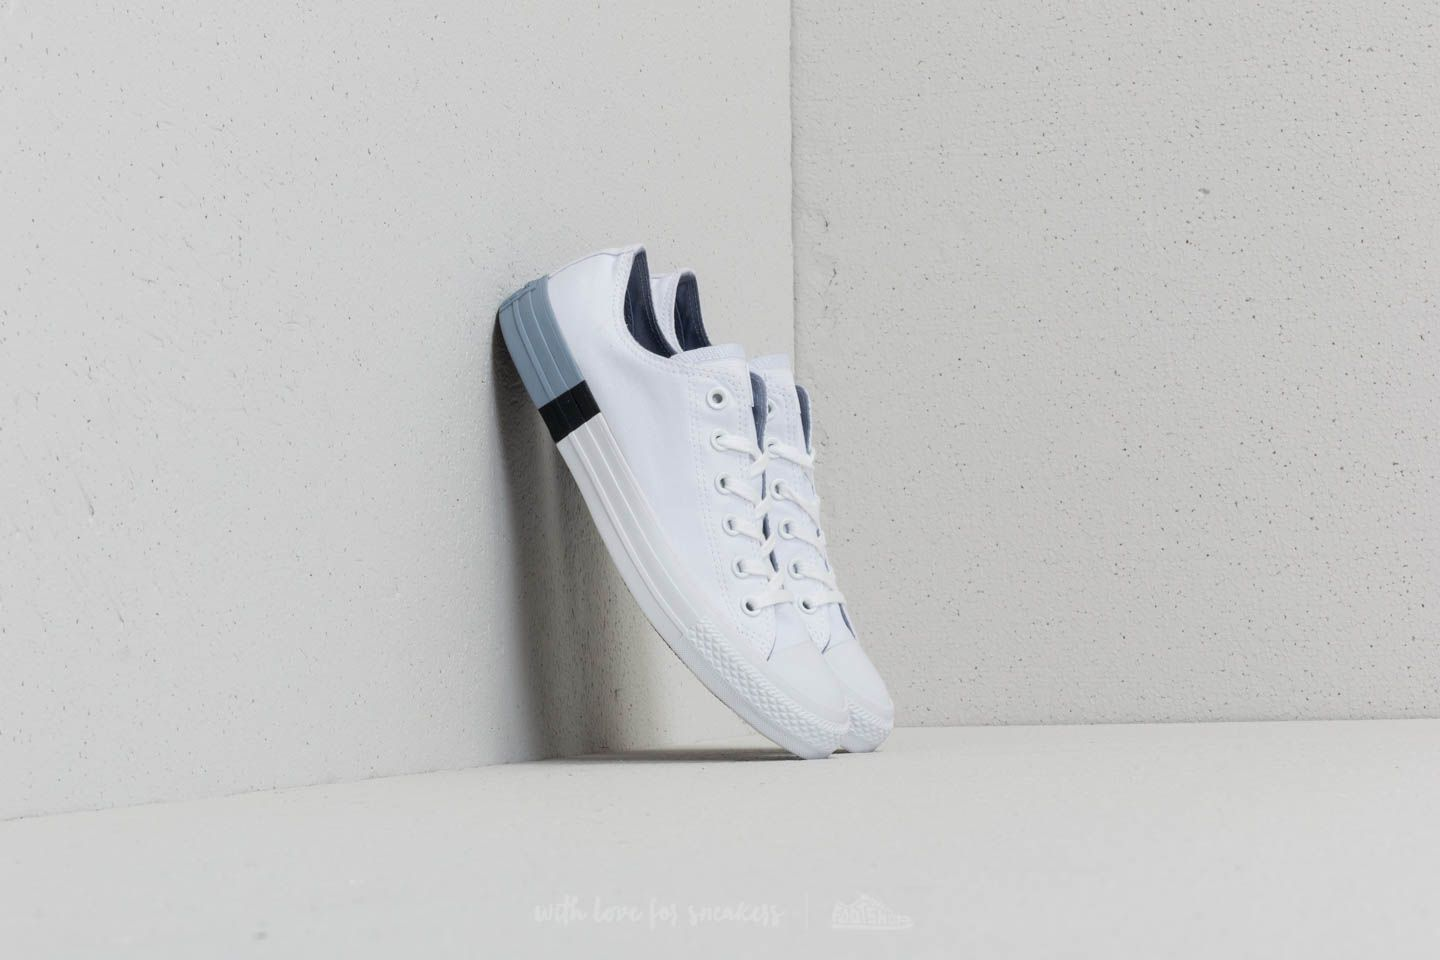 6ad836859cb3 Converse Chuck Taylor All Star OX White  Glacier Grey  White ...